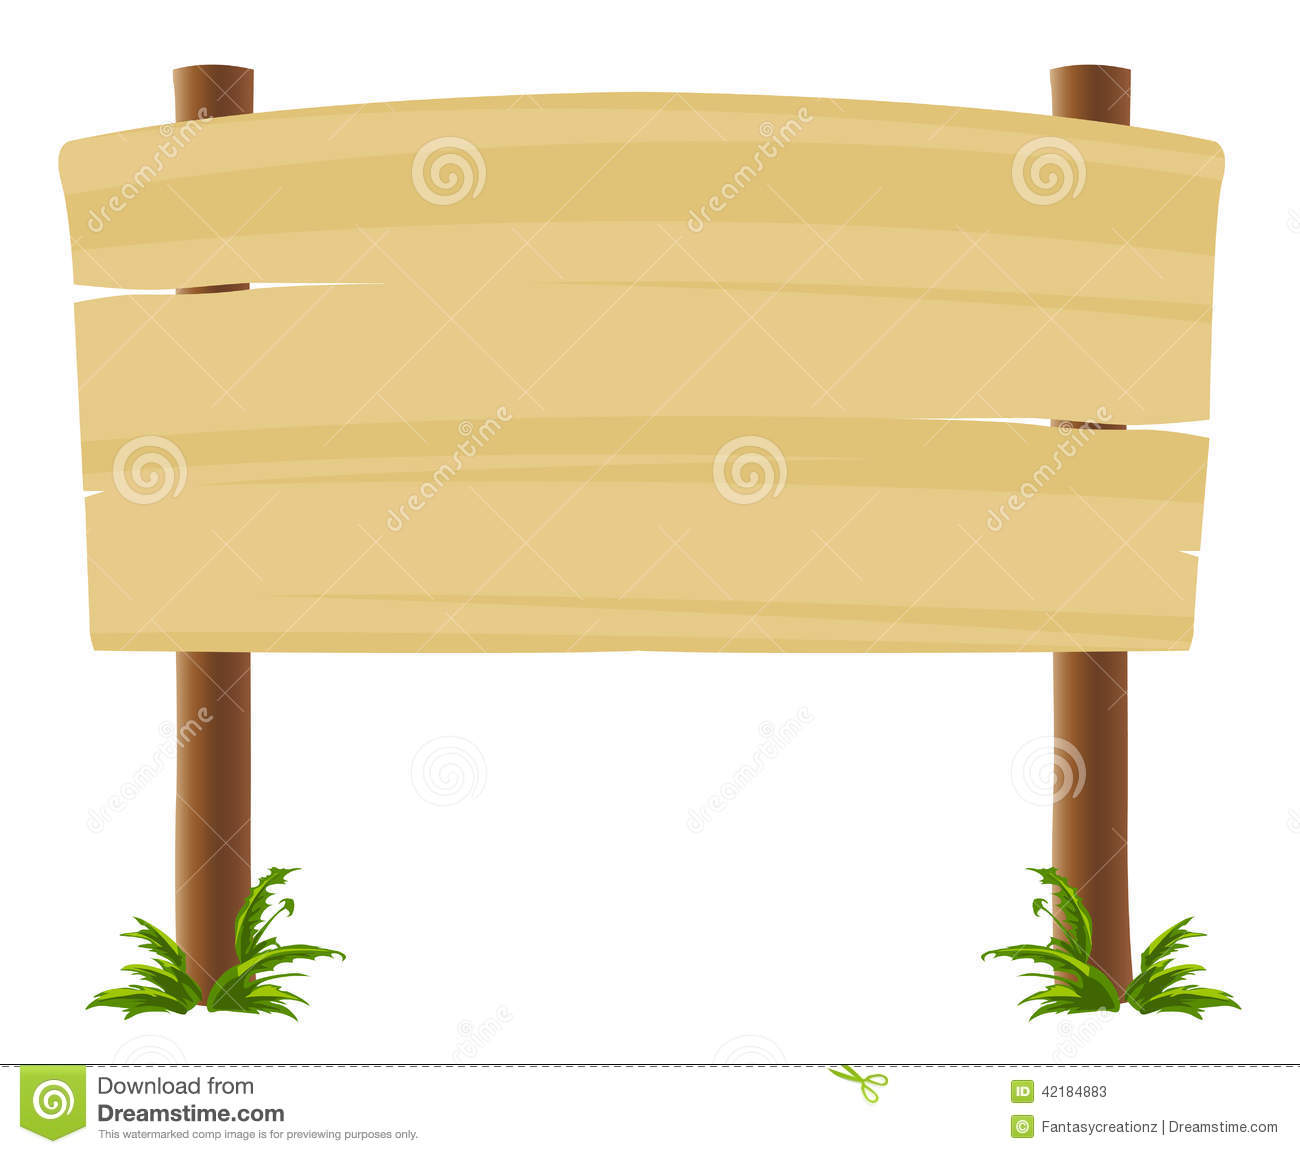 Wood Sign Vector – images free download